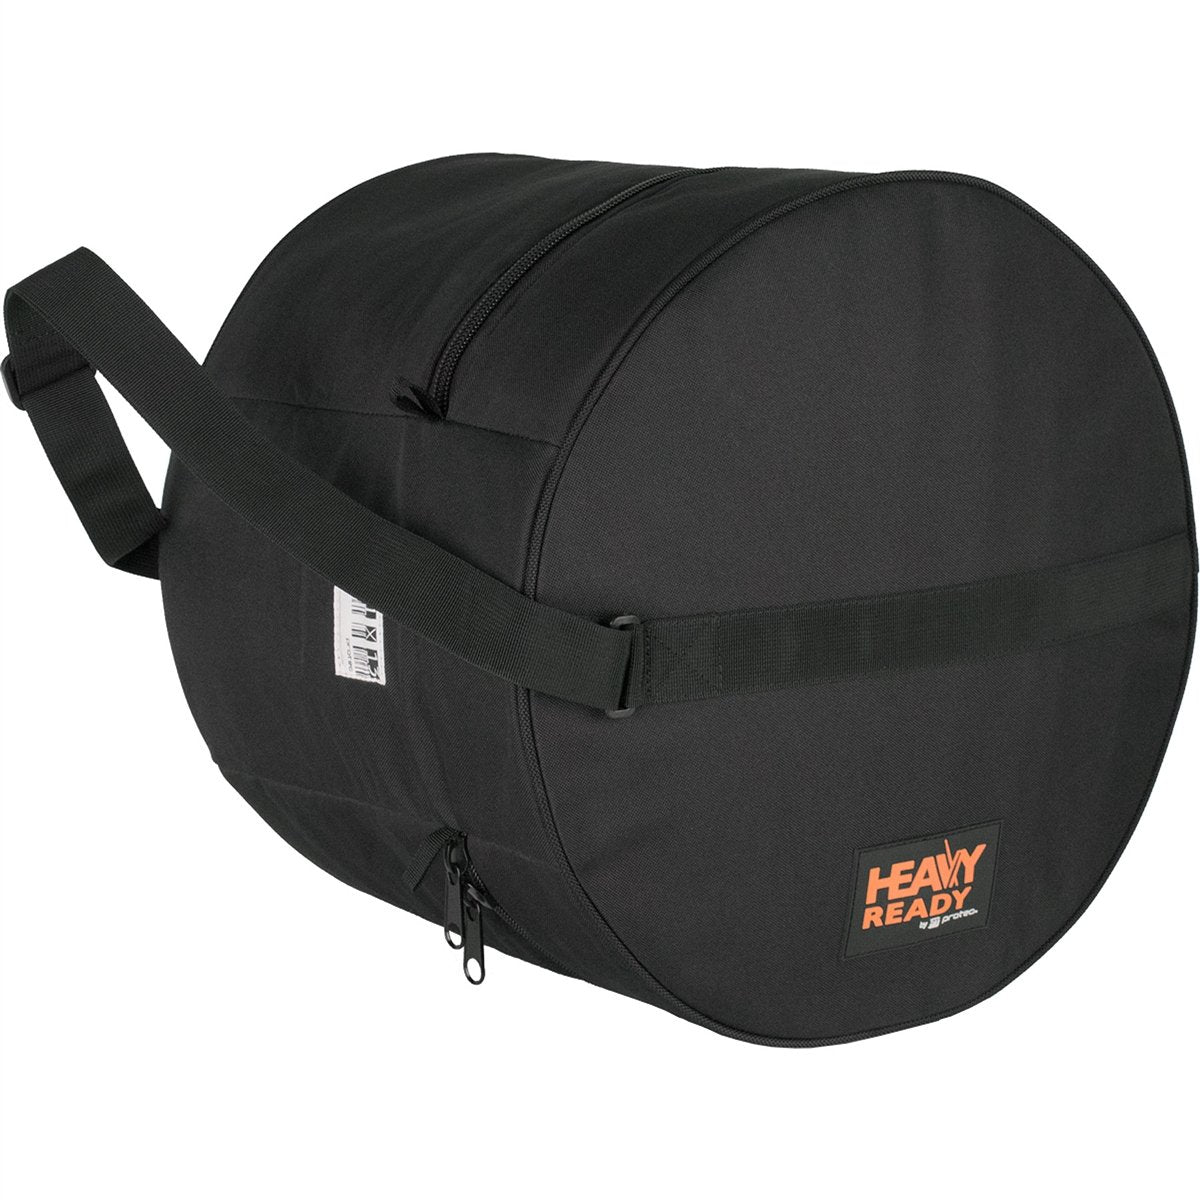 Protec - Padded Tom Bag 12″ X 14″ (Heavy Ready Series)-Percussion-Protec-Music Elements